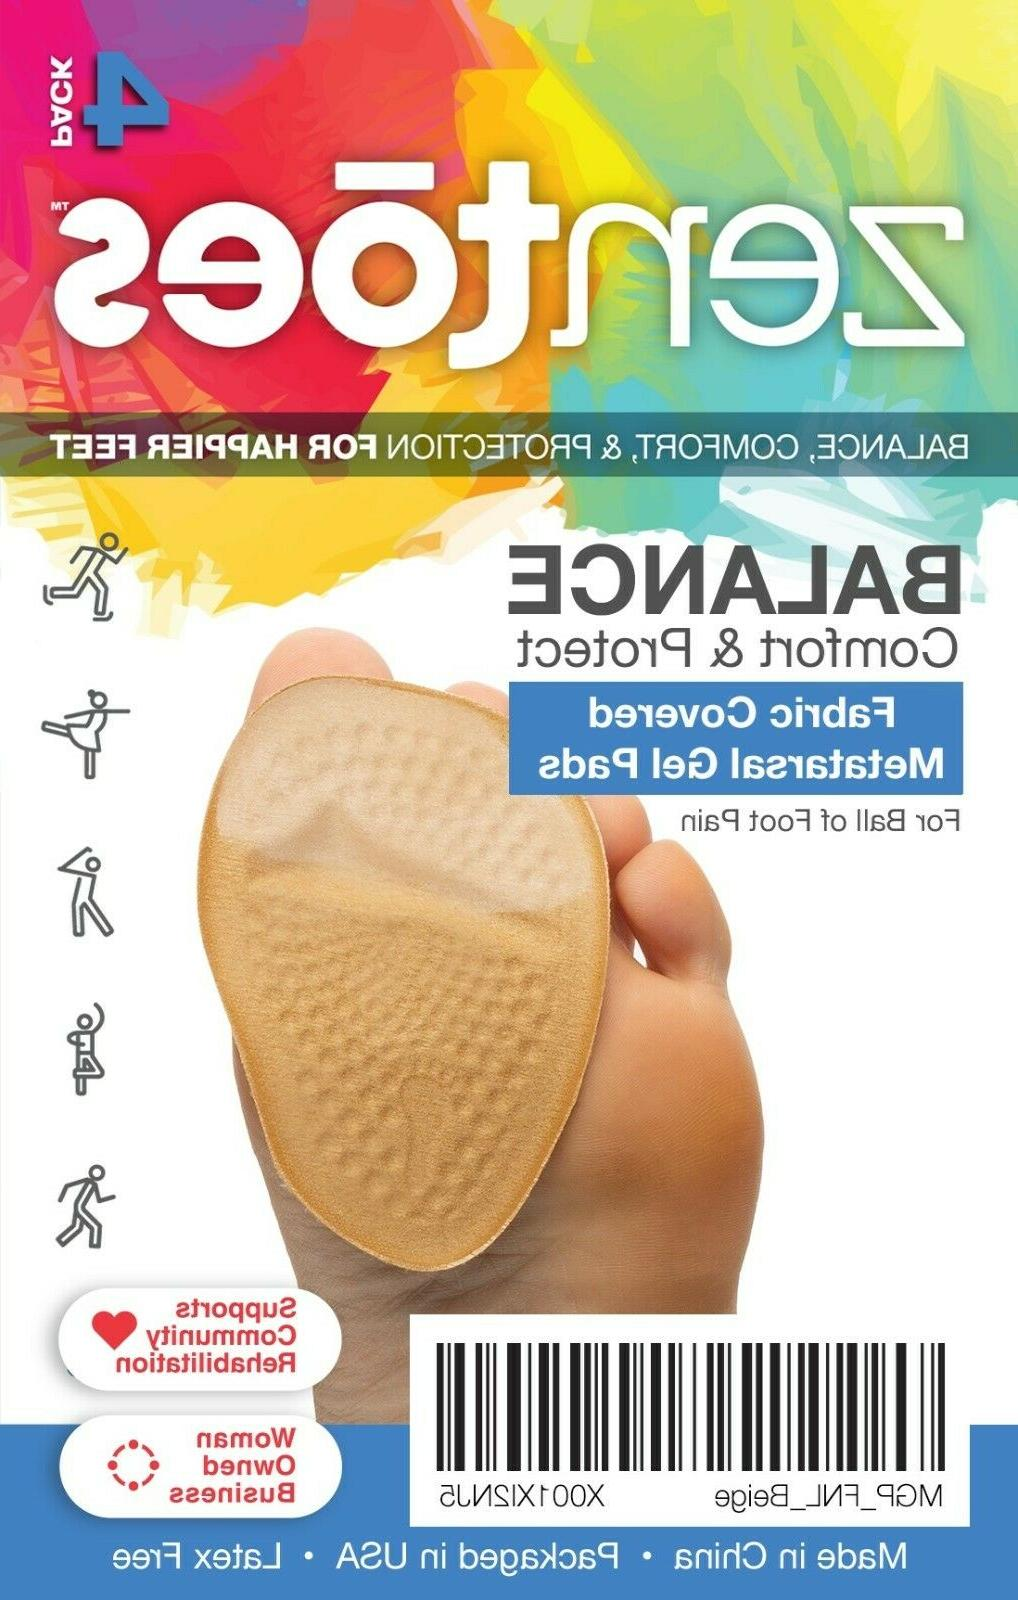 ball of foot cushions metatarsal fabric covered